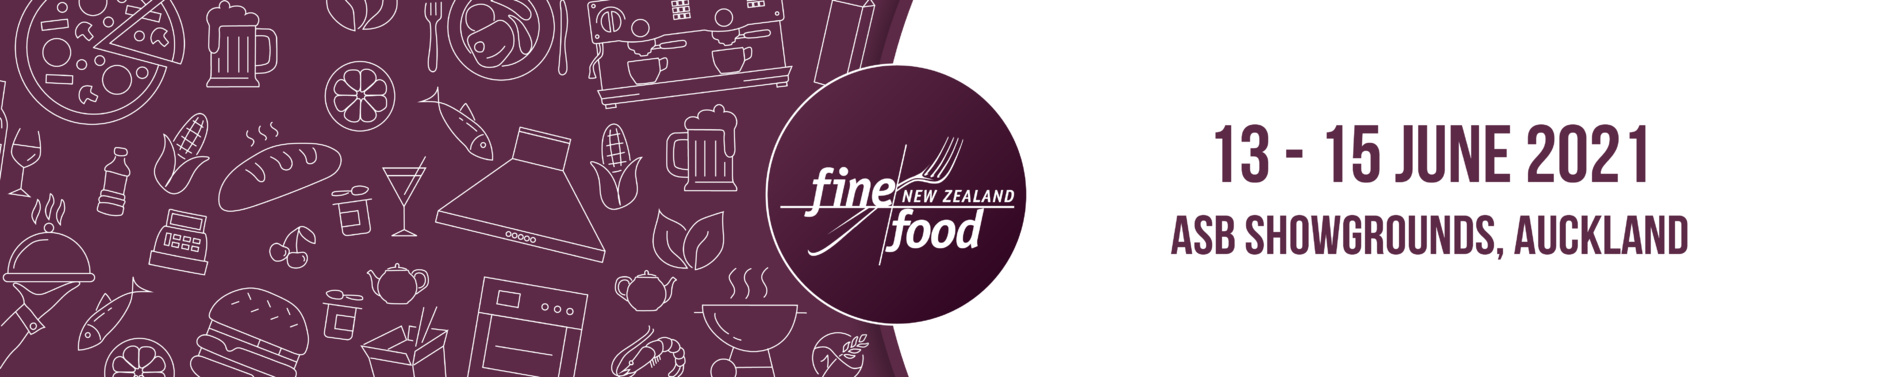 FFNZ20 Website Header-02 (2).png